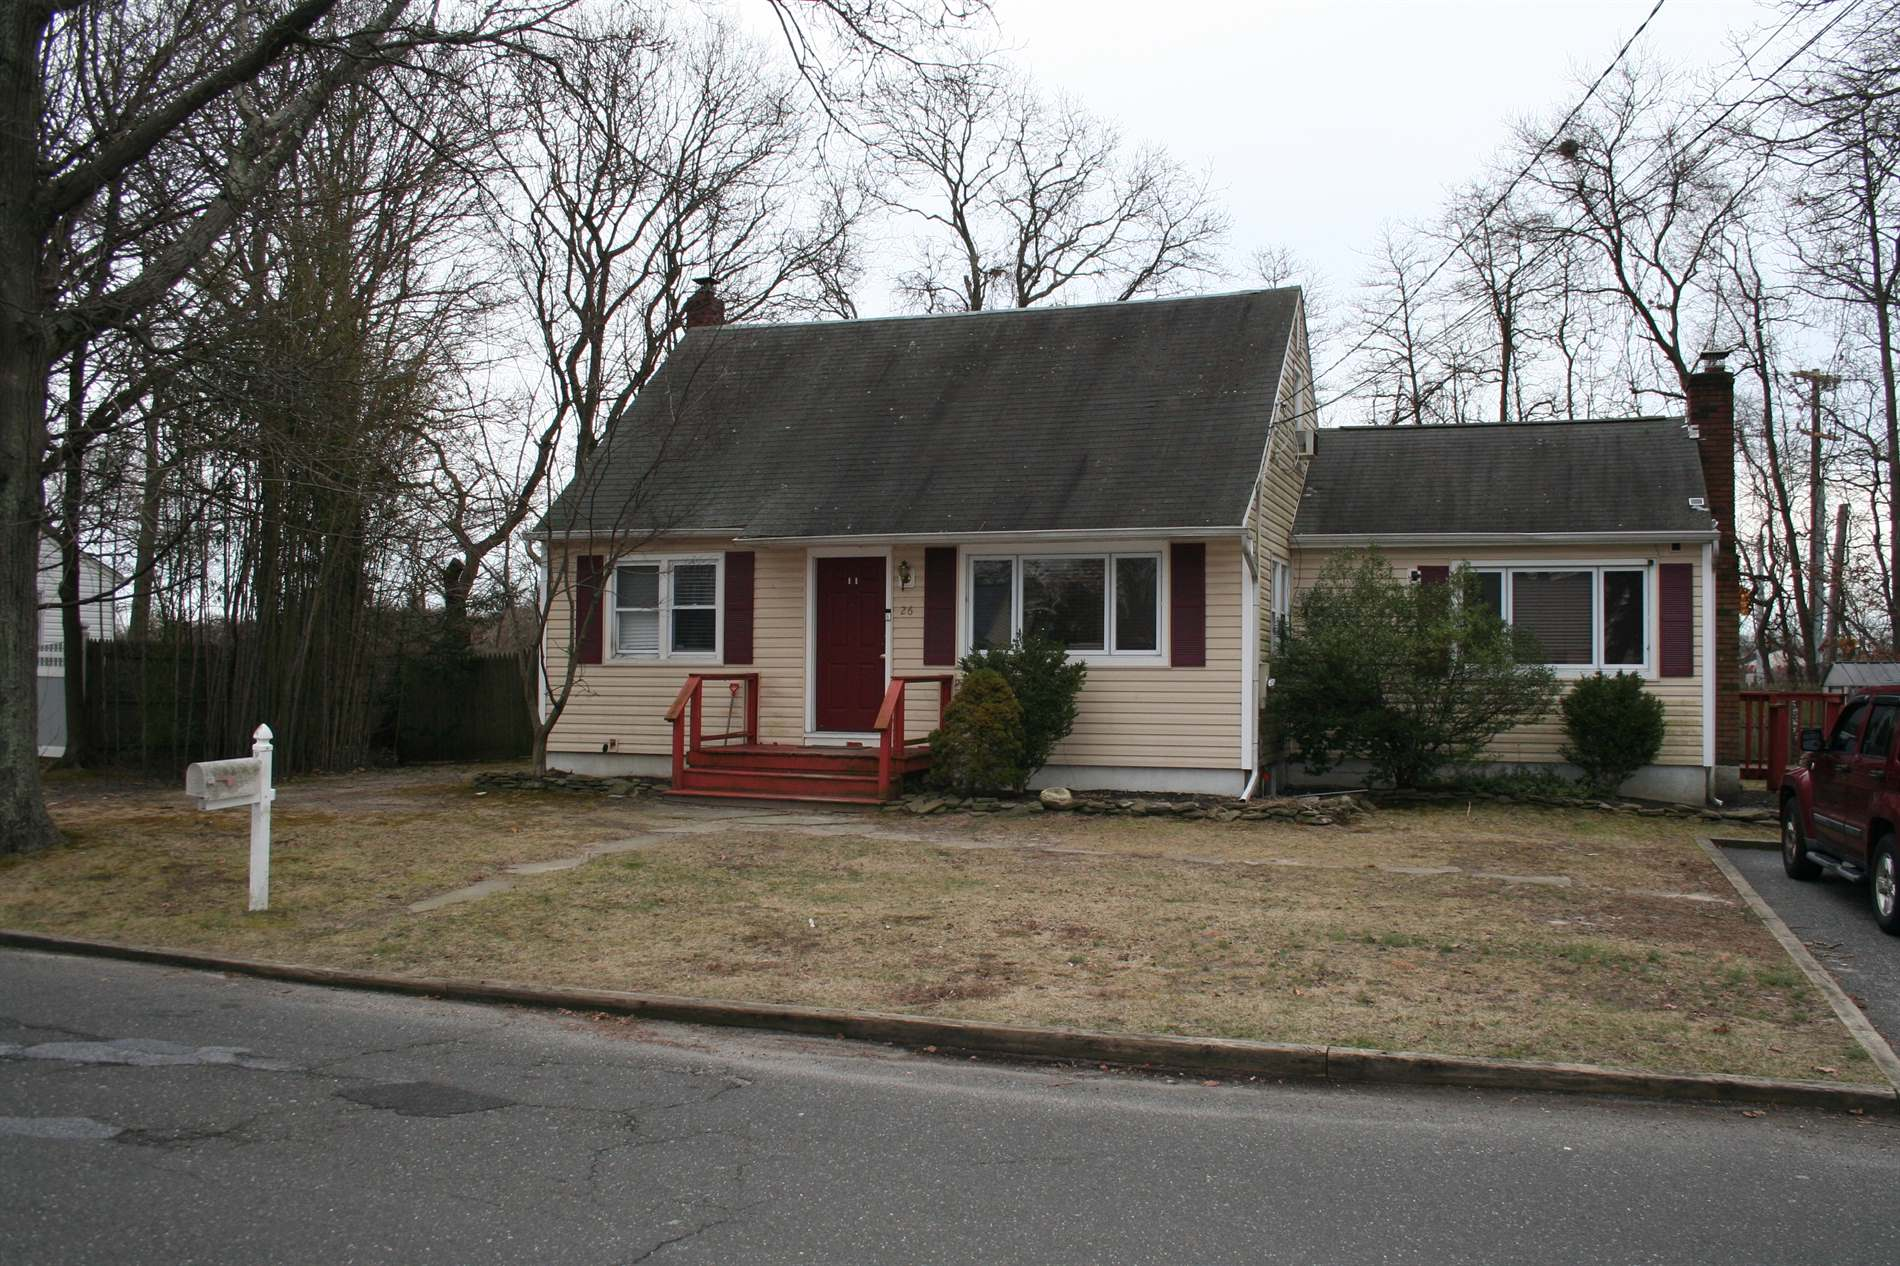 26 Station Ave, Patchogue, NY 11772